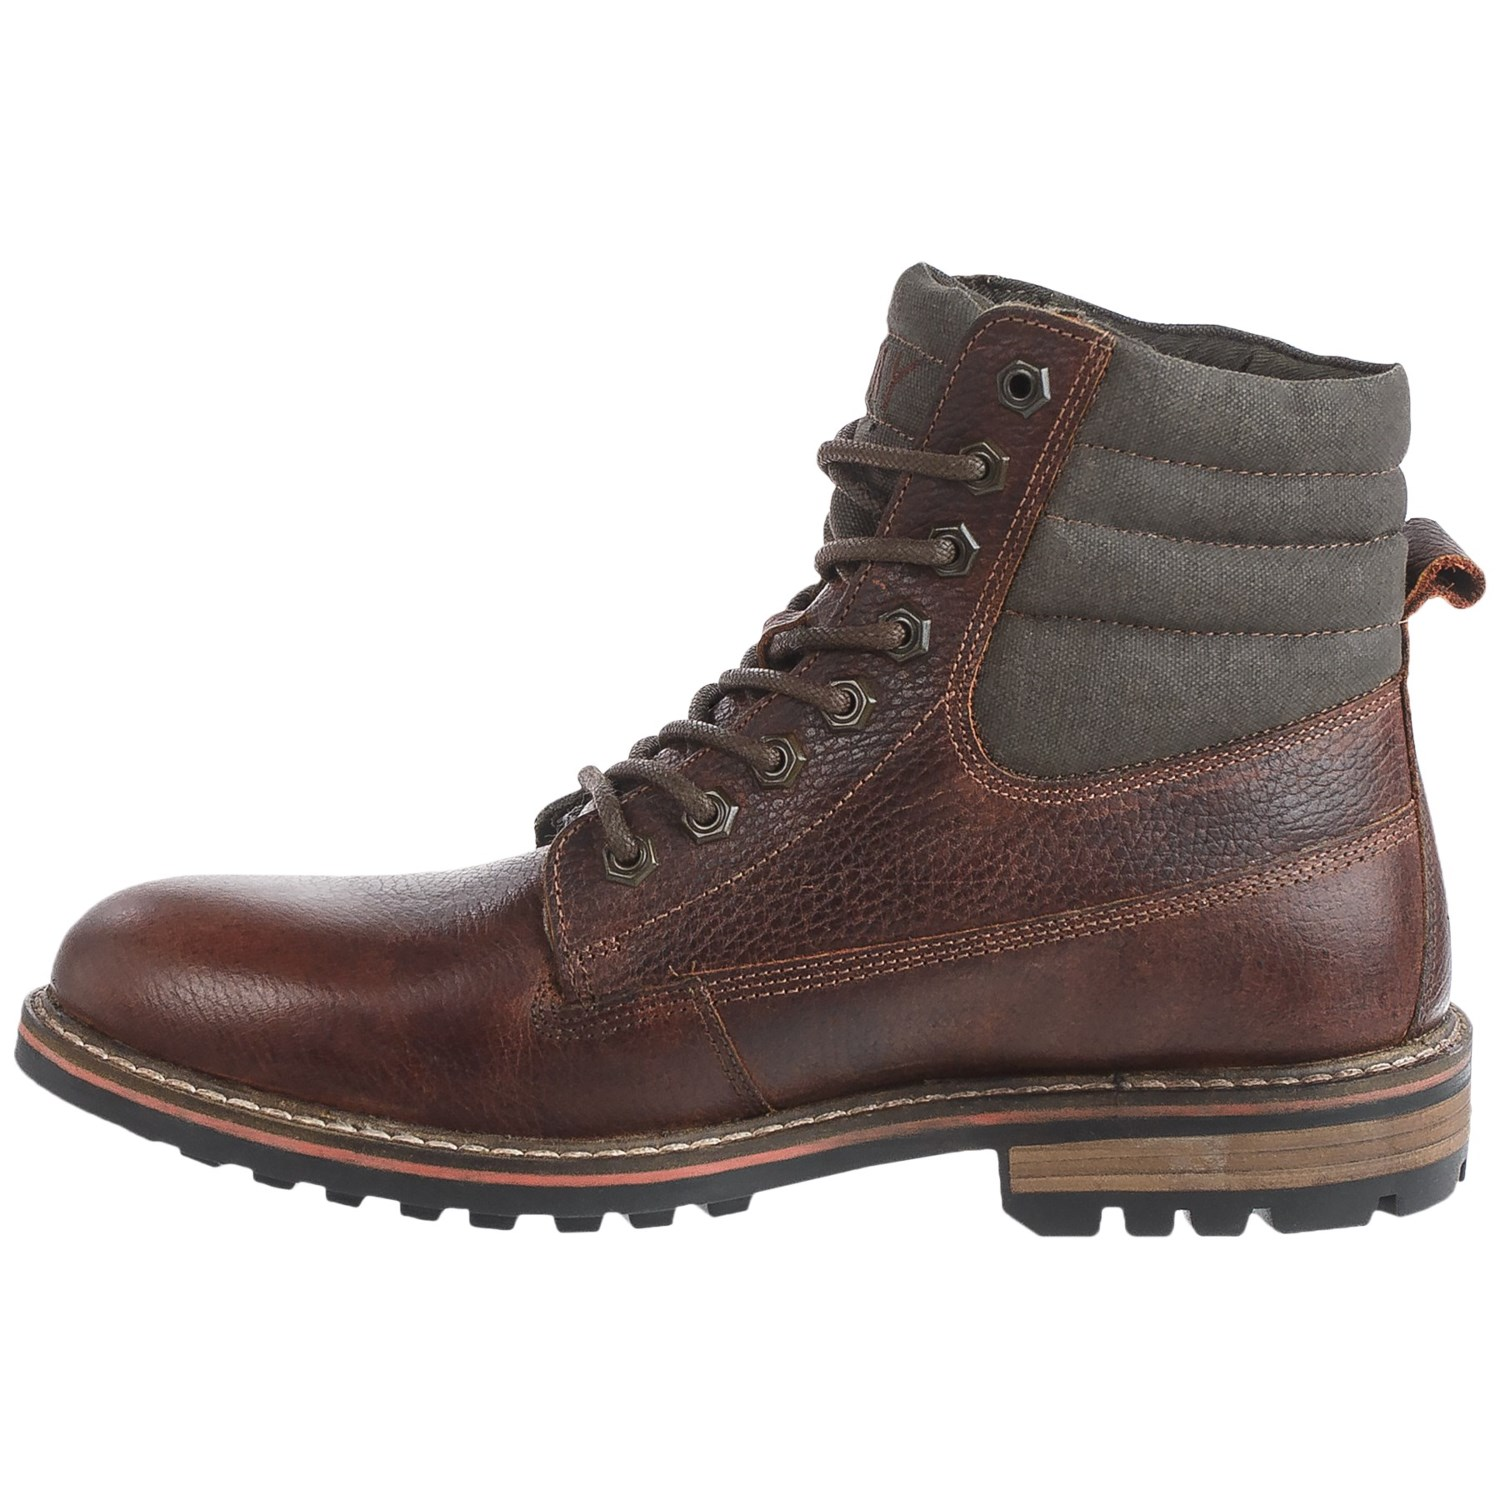 Andrew Marc Radcliff Boots For Men